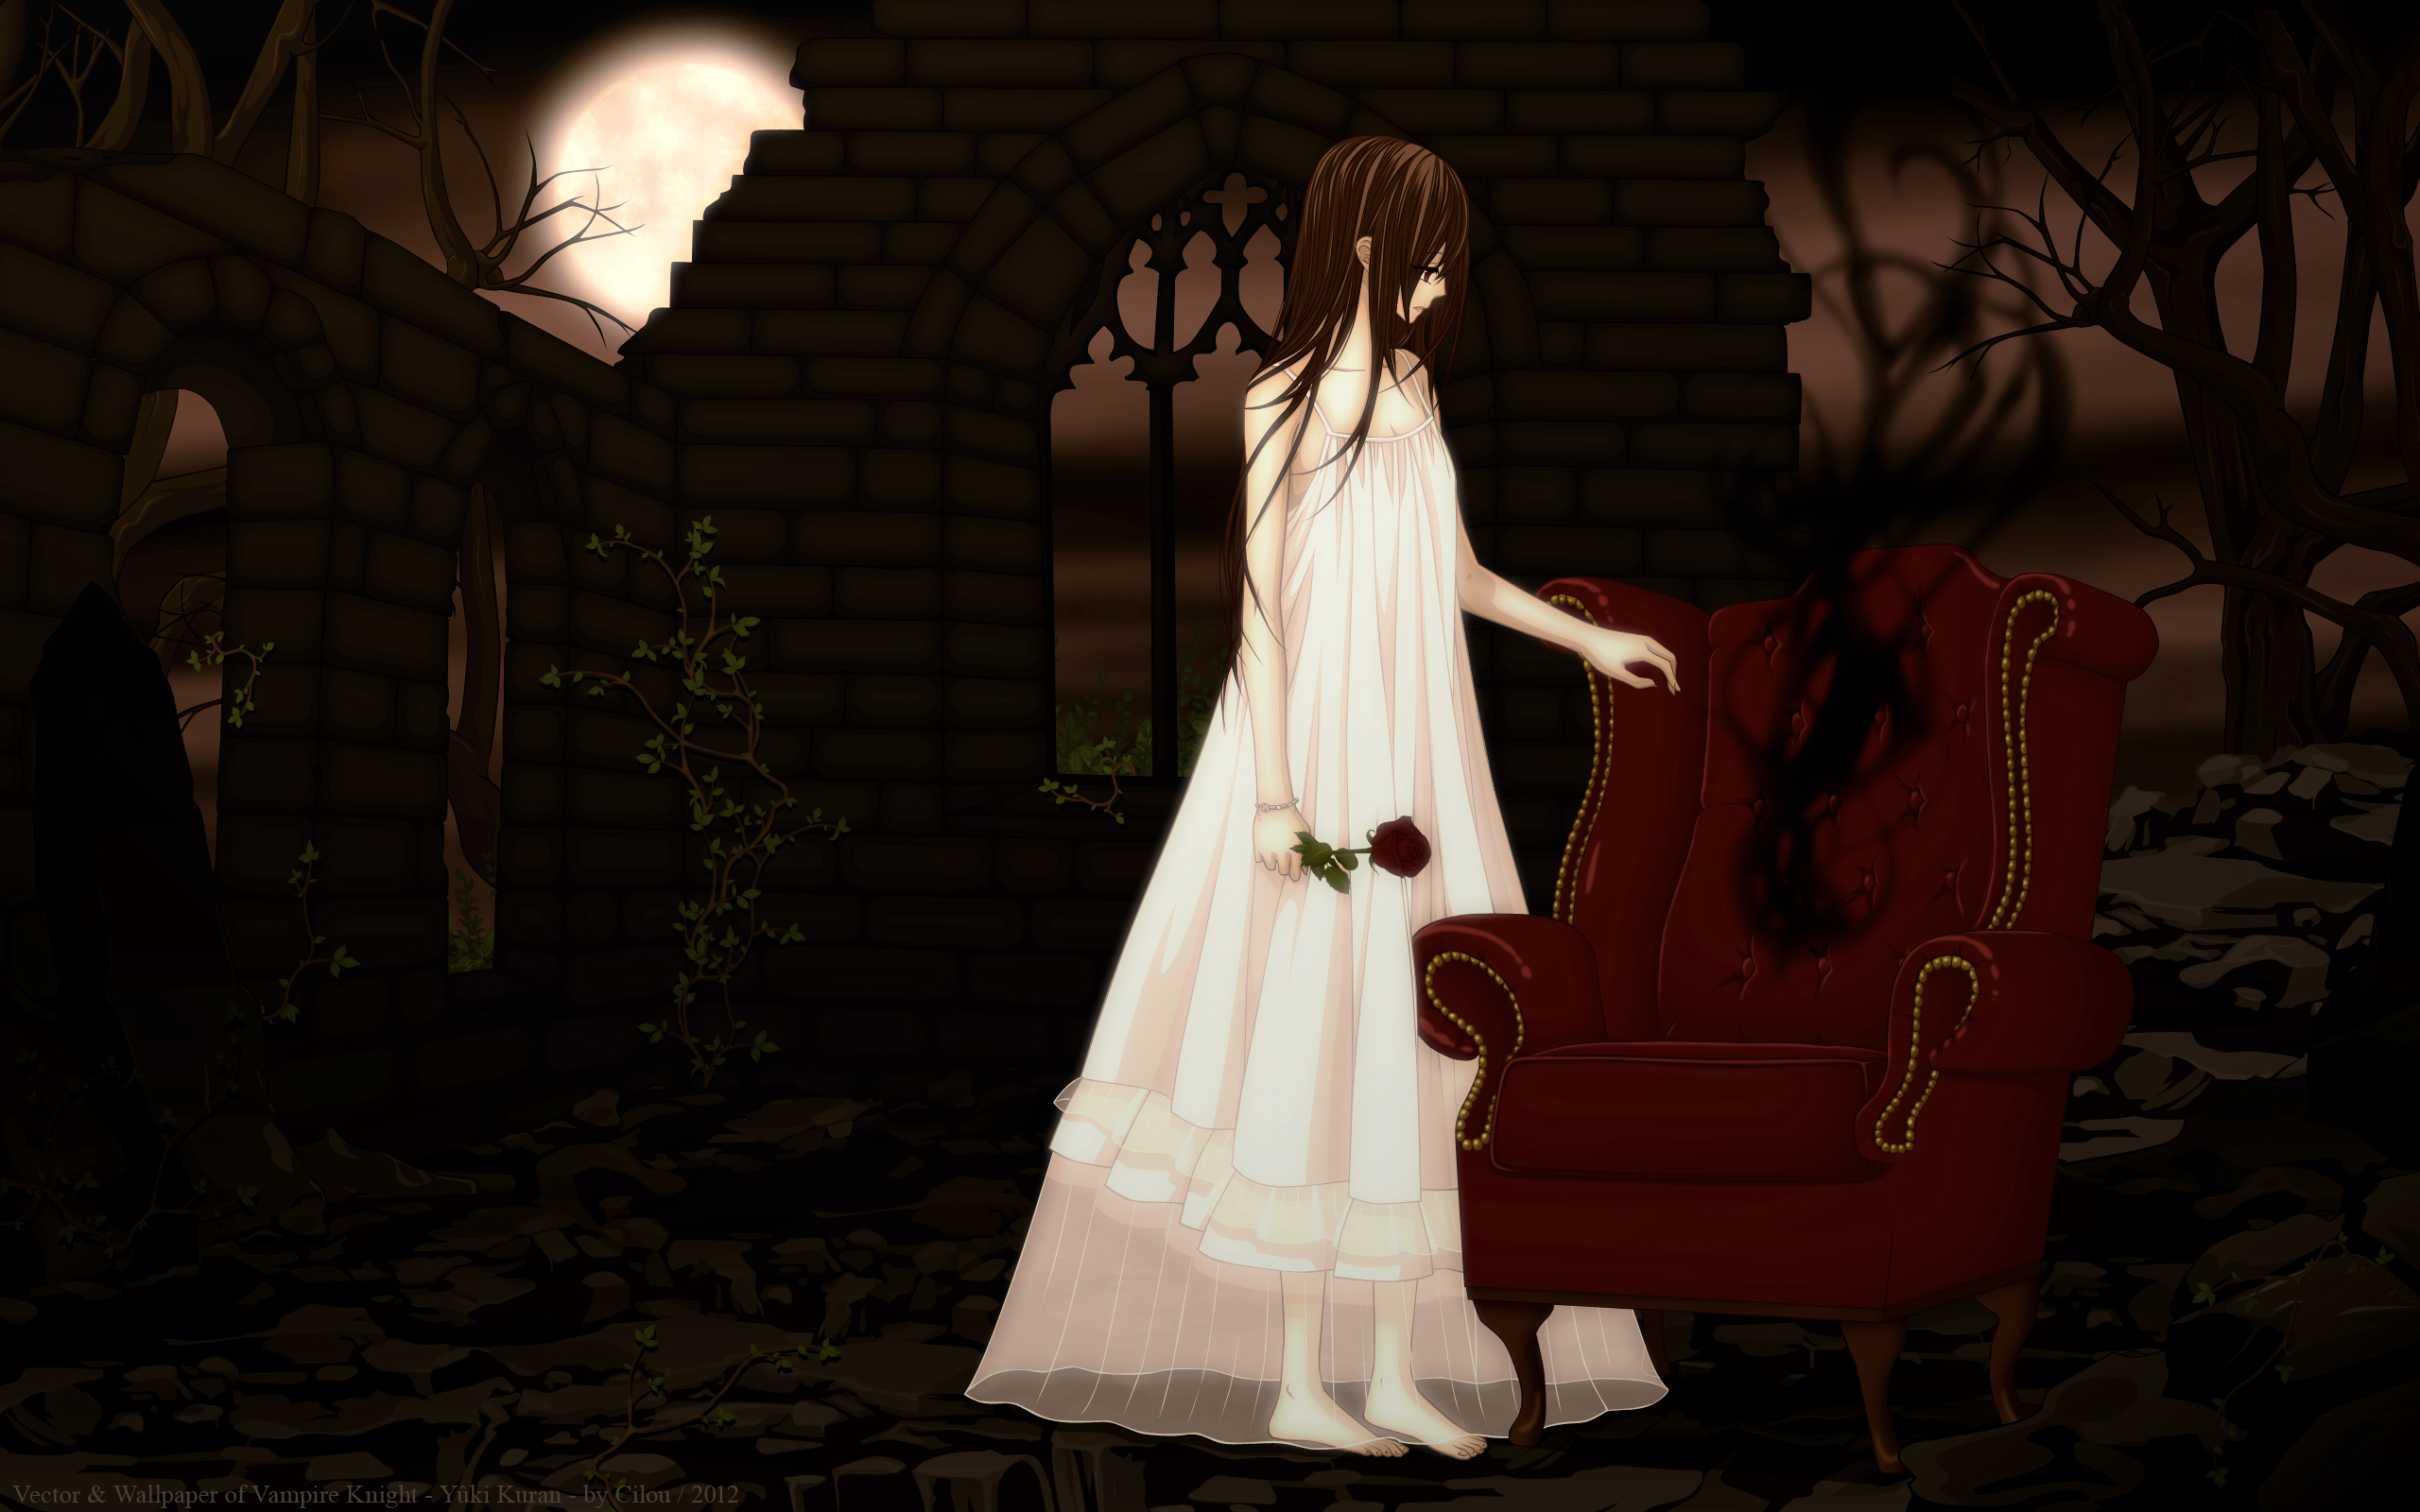 pictures vampire knight girls anime 2560x1600